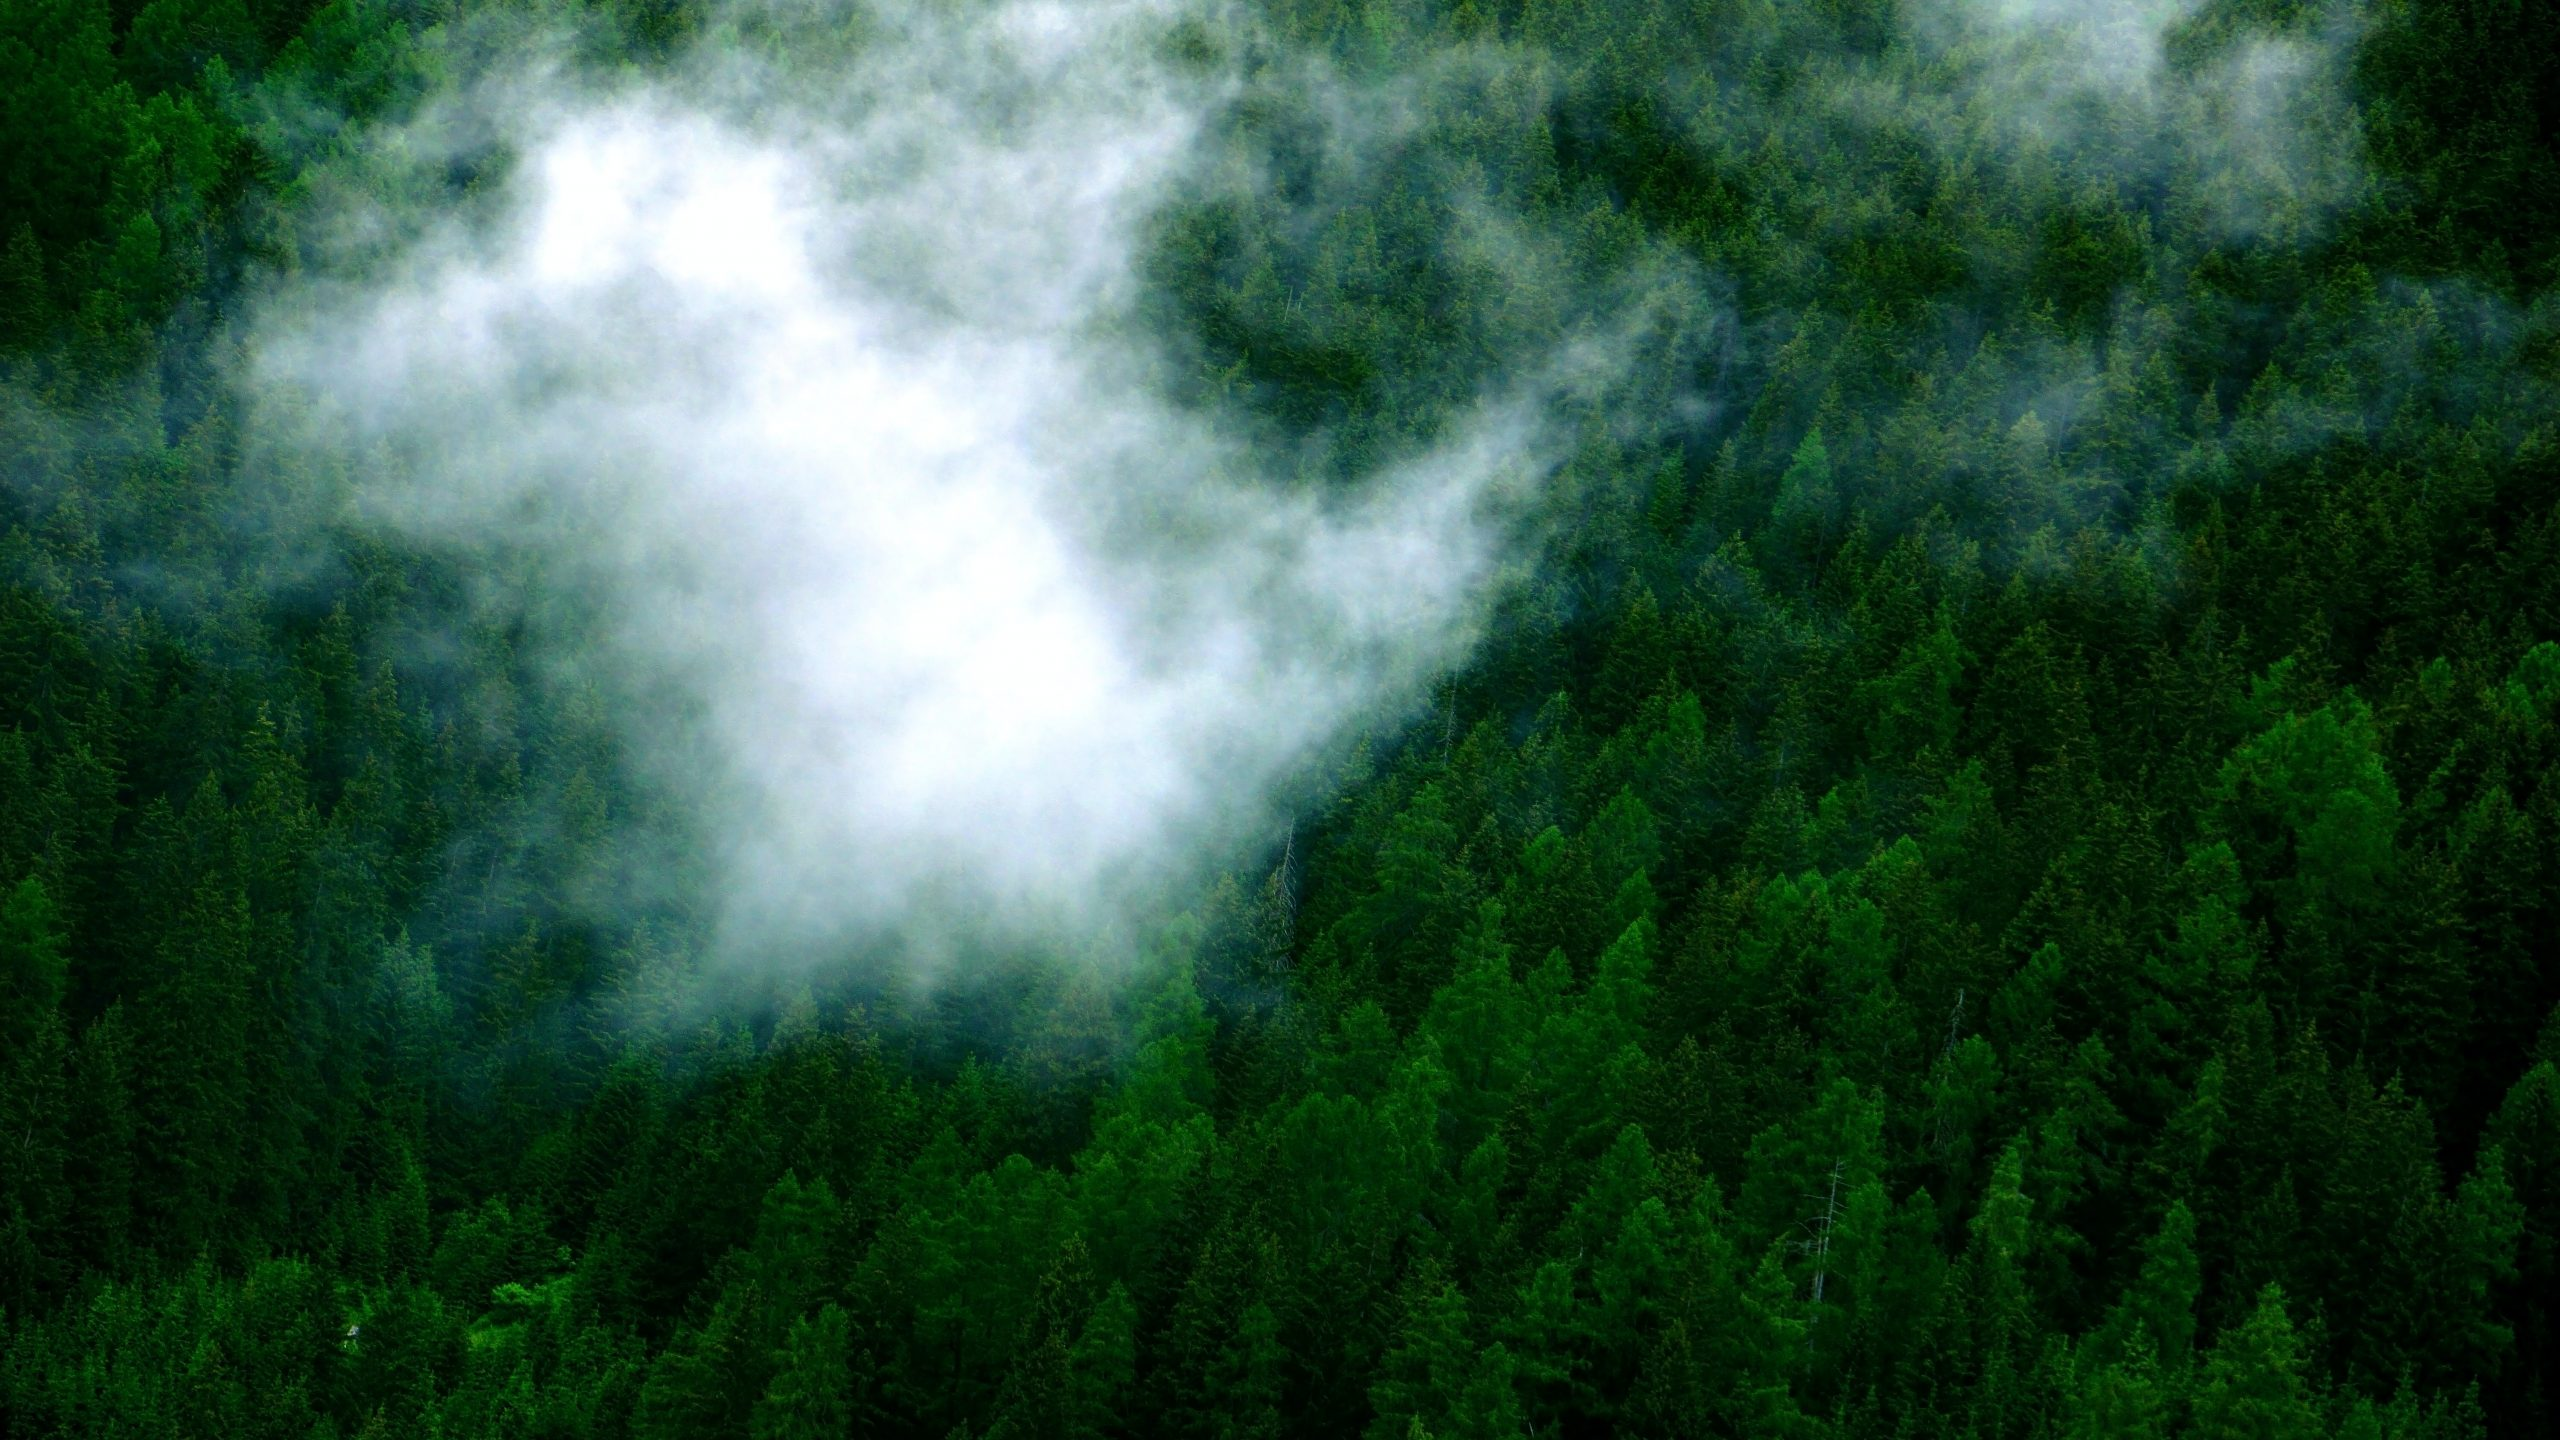 forest viewed above cloud level